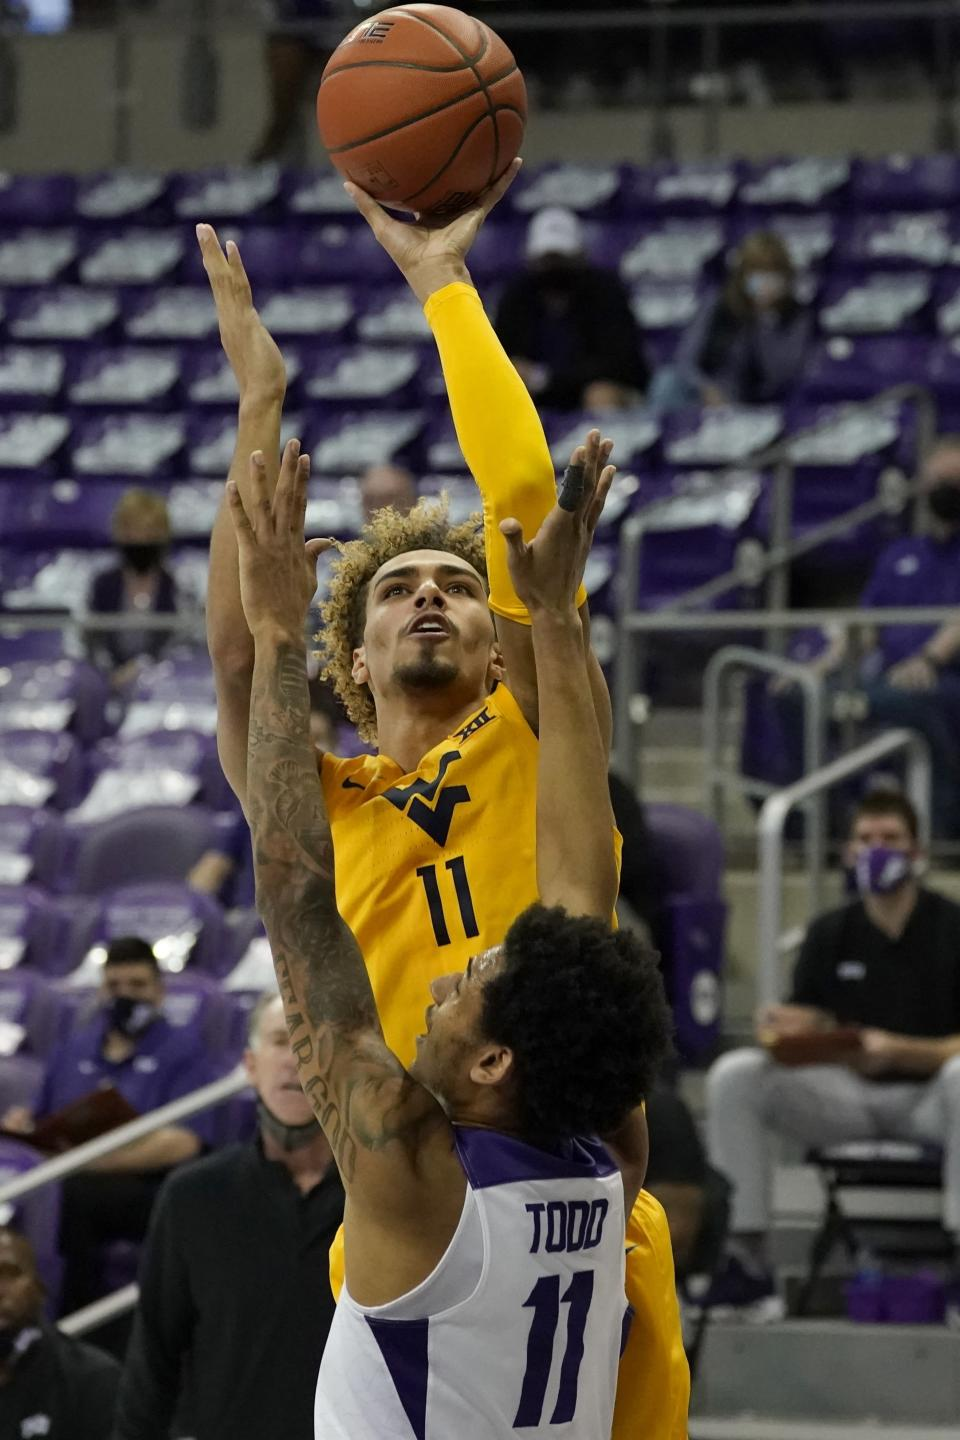 West Virginia forward Emmitt Matthews Jr., top, takes a shot as TCU guard Taryn Todd, bottom, defends in the first half of an NCAA college basketball game in Fort Worth, Texas, Tuesday, Feb. 23, 2021. (AP Photo/Tony Gutierrez)